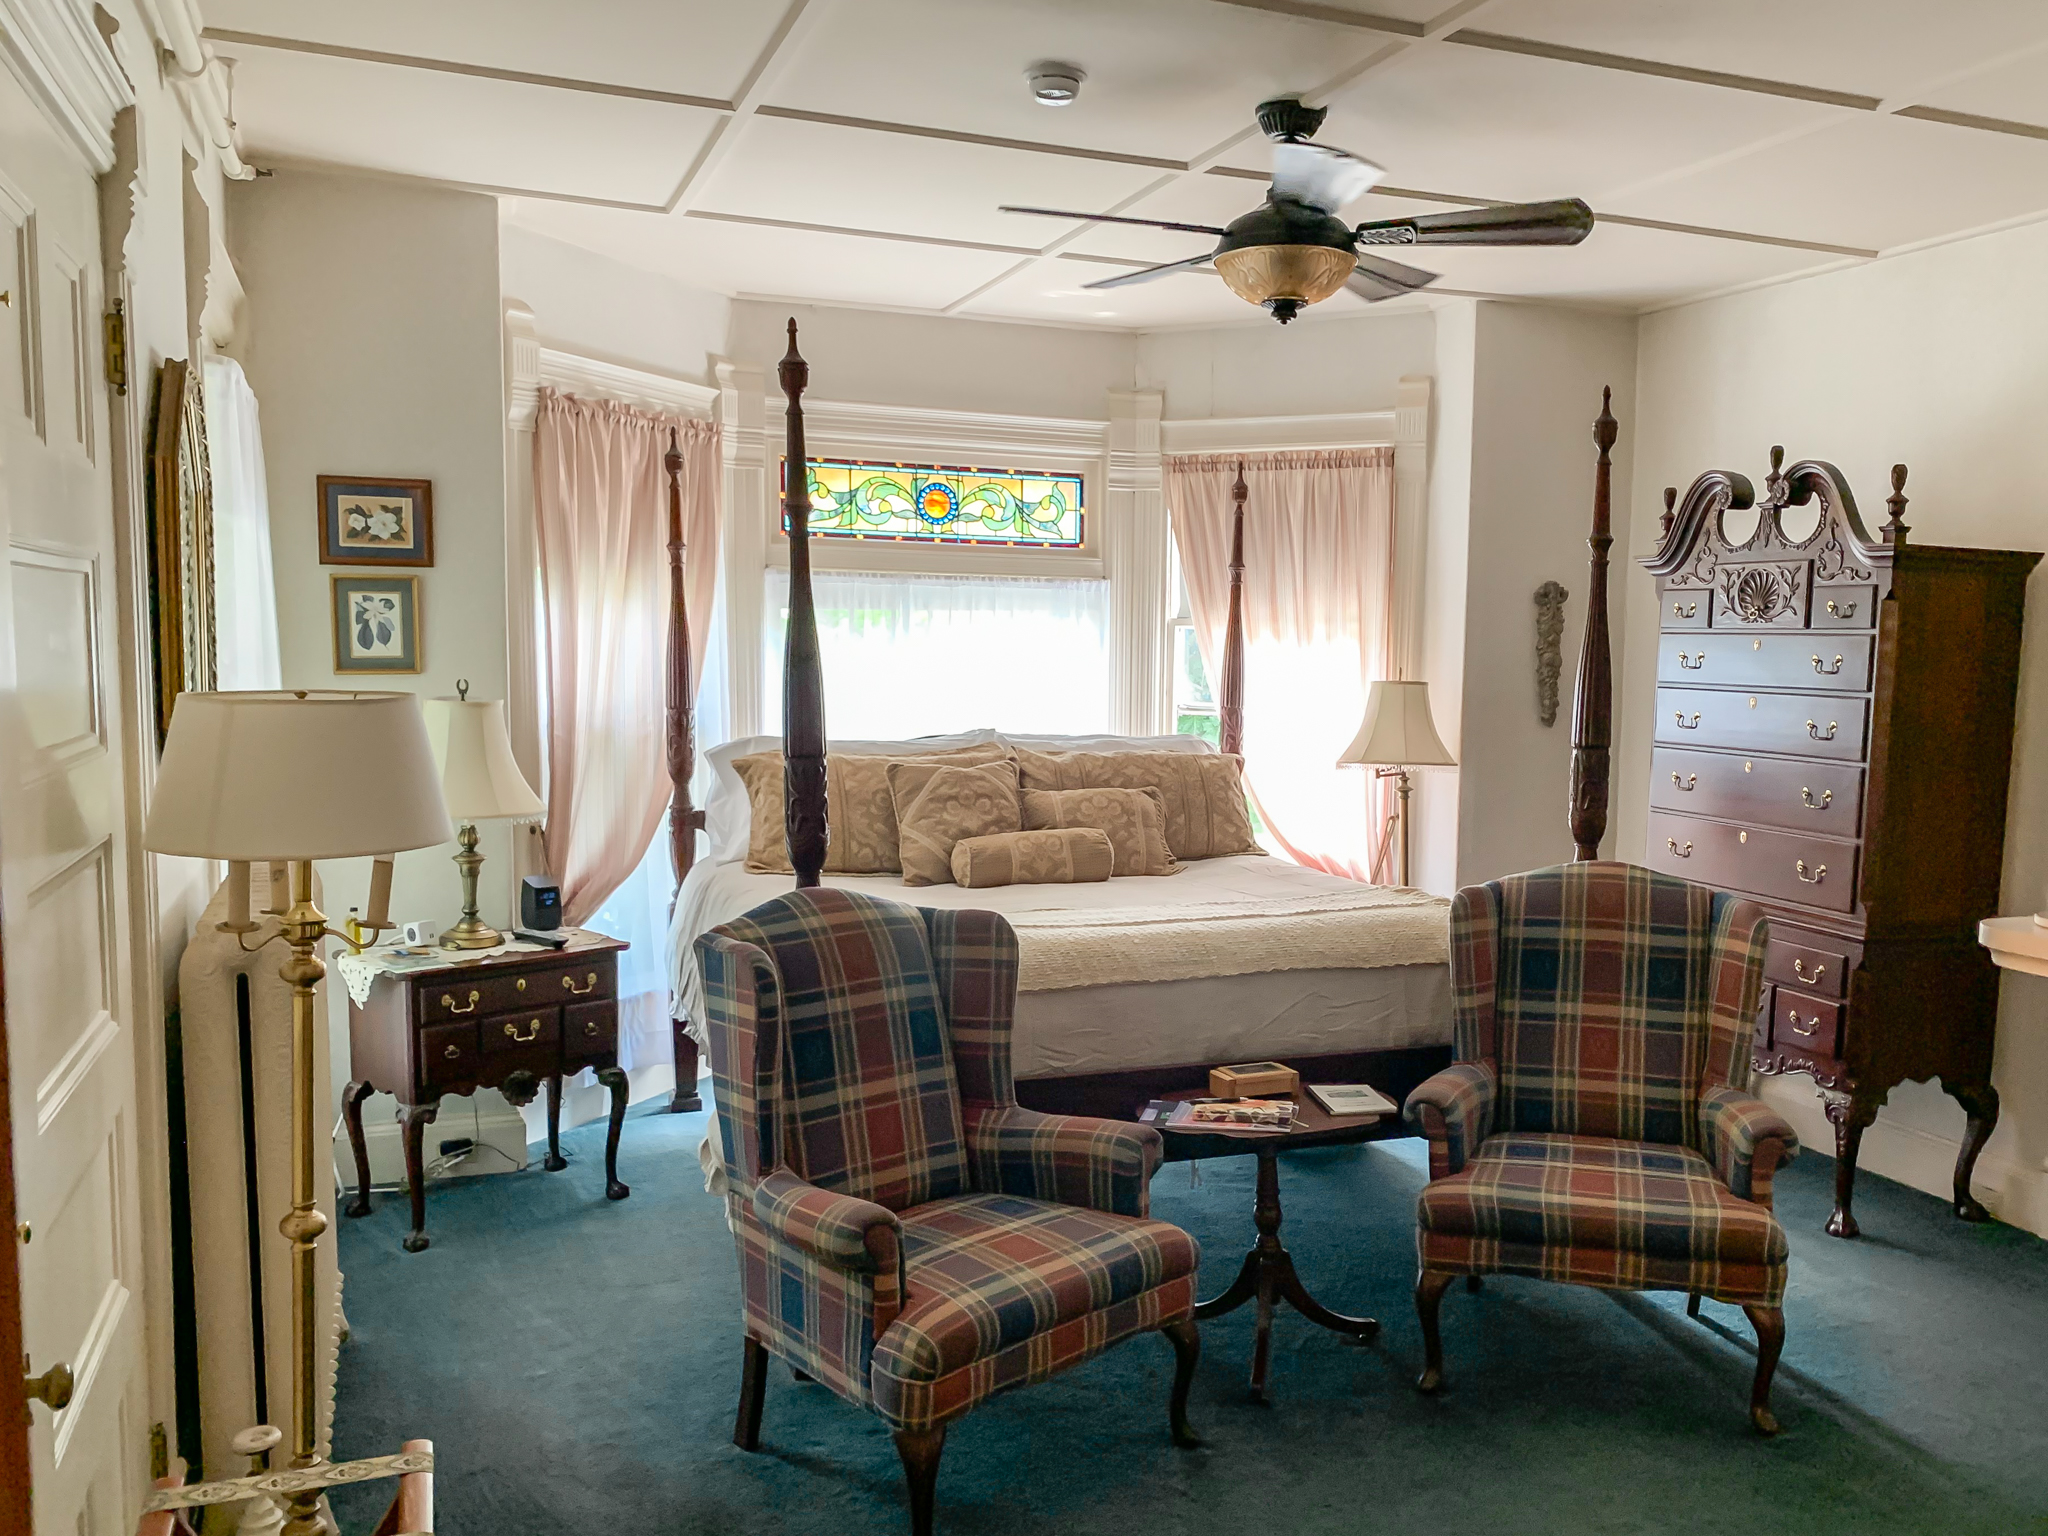 Grand Manan - Our premiere guest room sees to every detail of Victorian luxury with solid mahogany furnishings. Located on the first floor.Room features: Luxury king bedded room with fireplace, full en-suite bath with oversized jetted tub and shower.